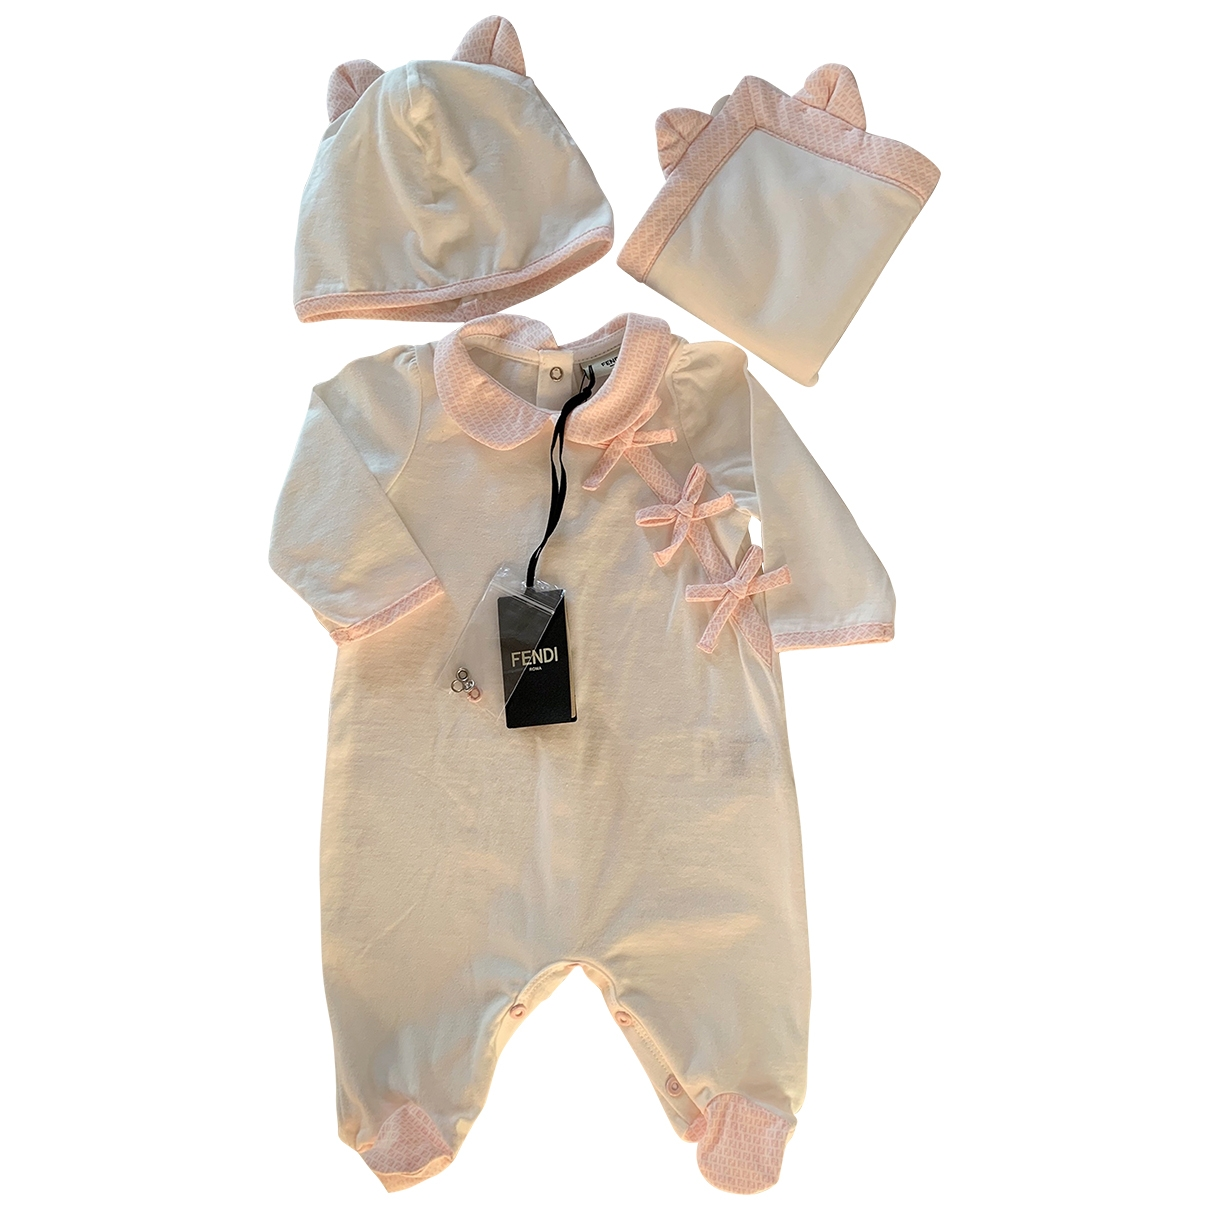 Fendi \N Pink Cotton Outfits for Kids 1 month - until 22 inches UK